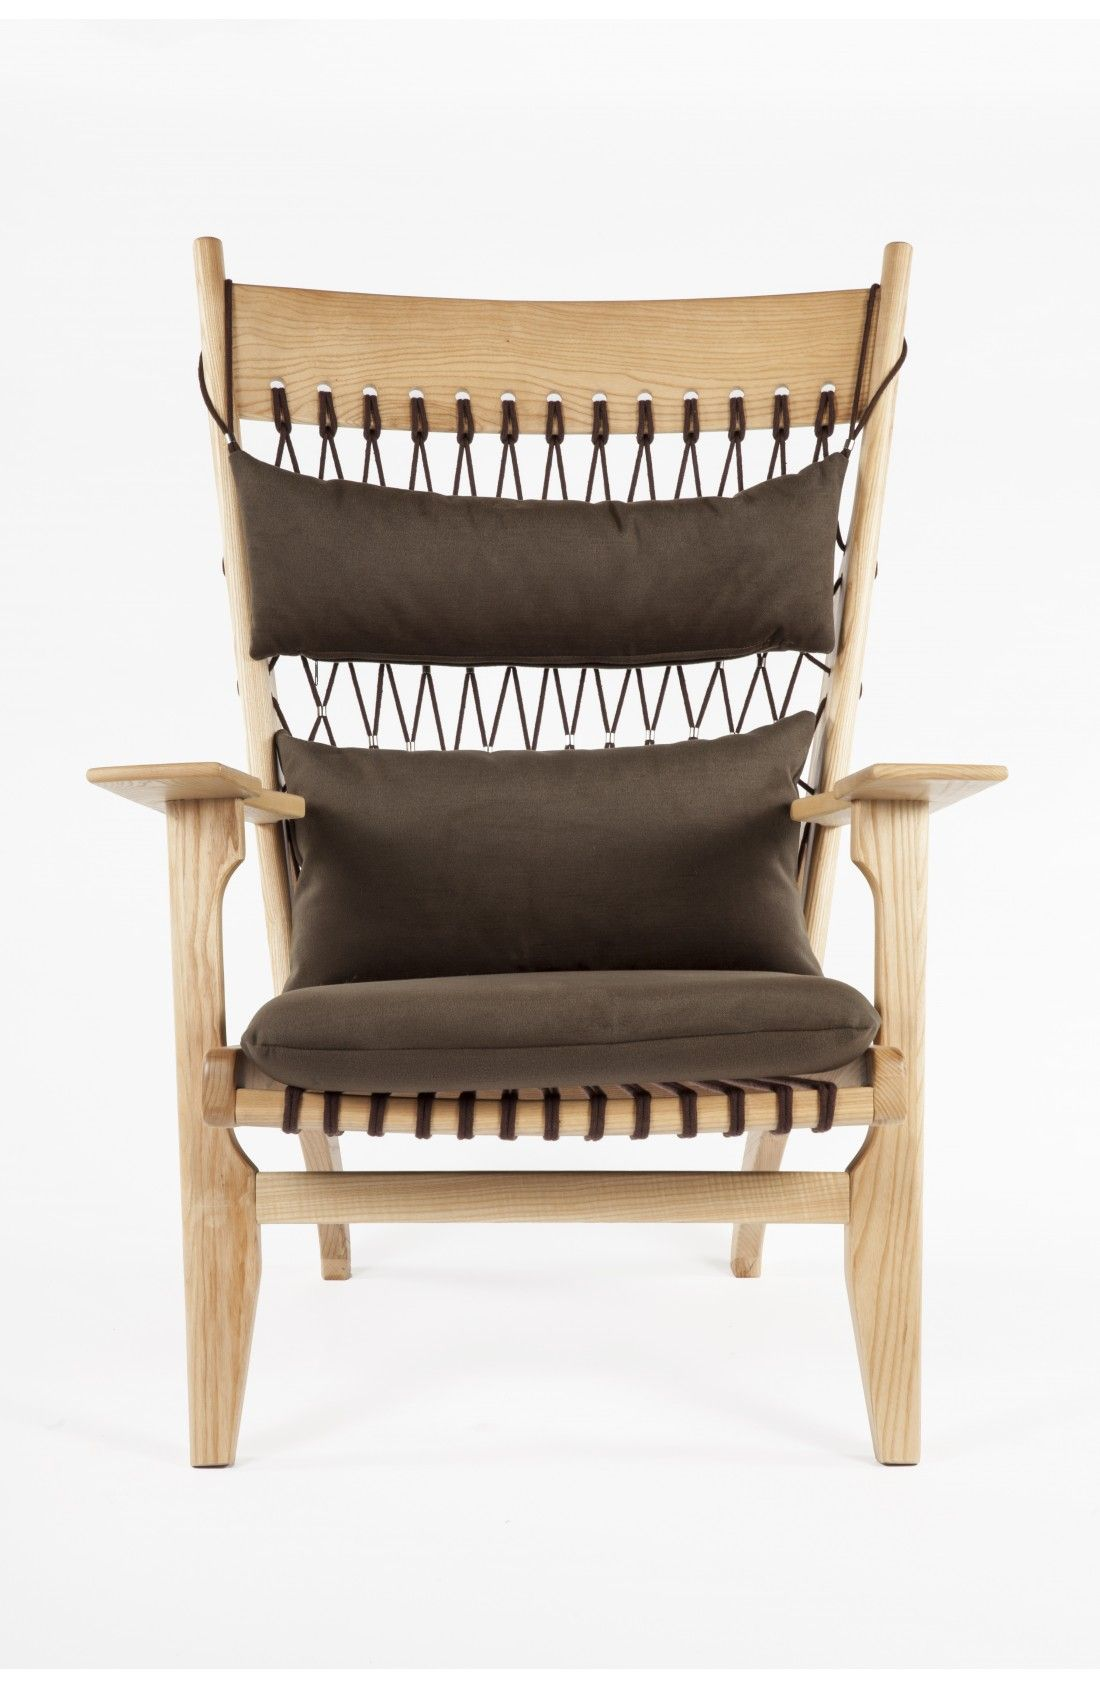 PP 129 Web Lounge Chair Cult & PP 129 Web Lounge Chair Cult | furniture | Pinterest | Guest houses